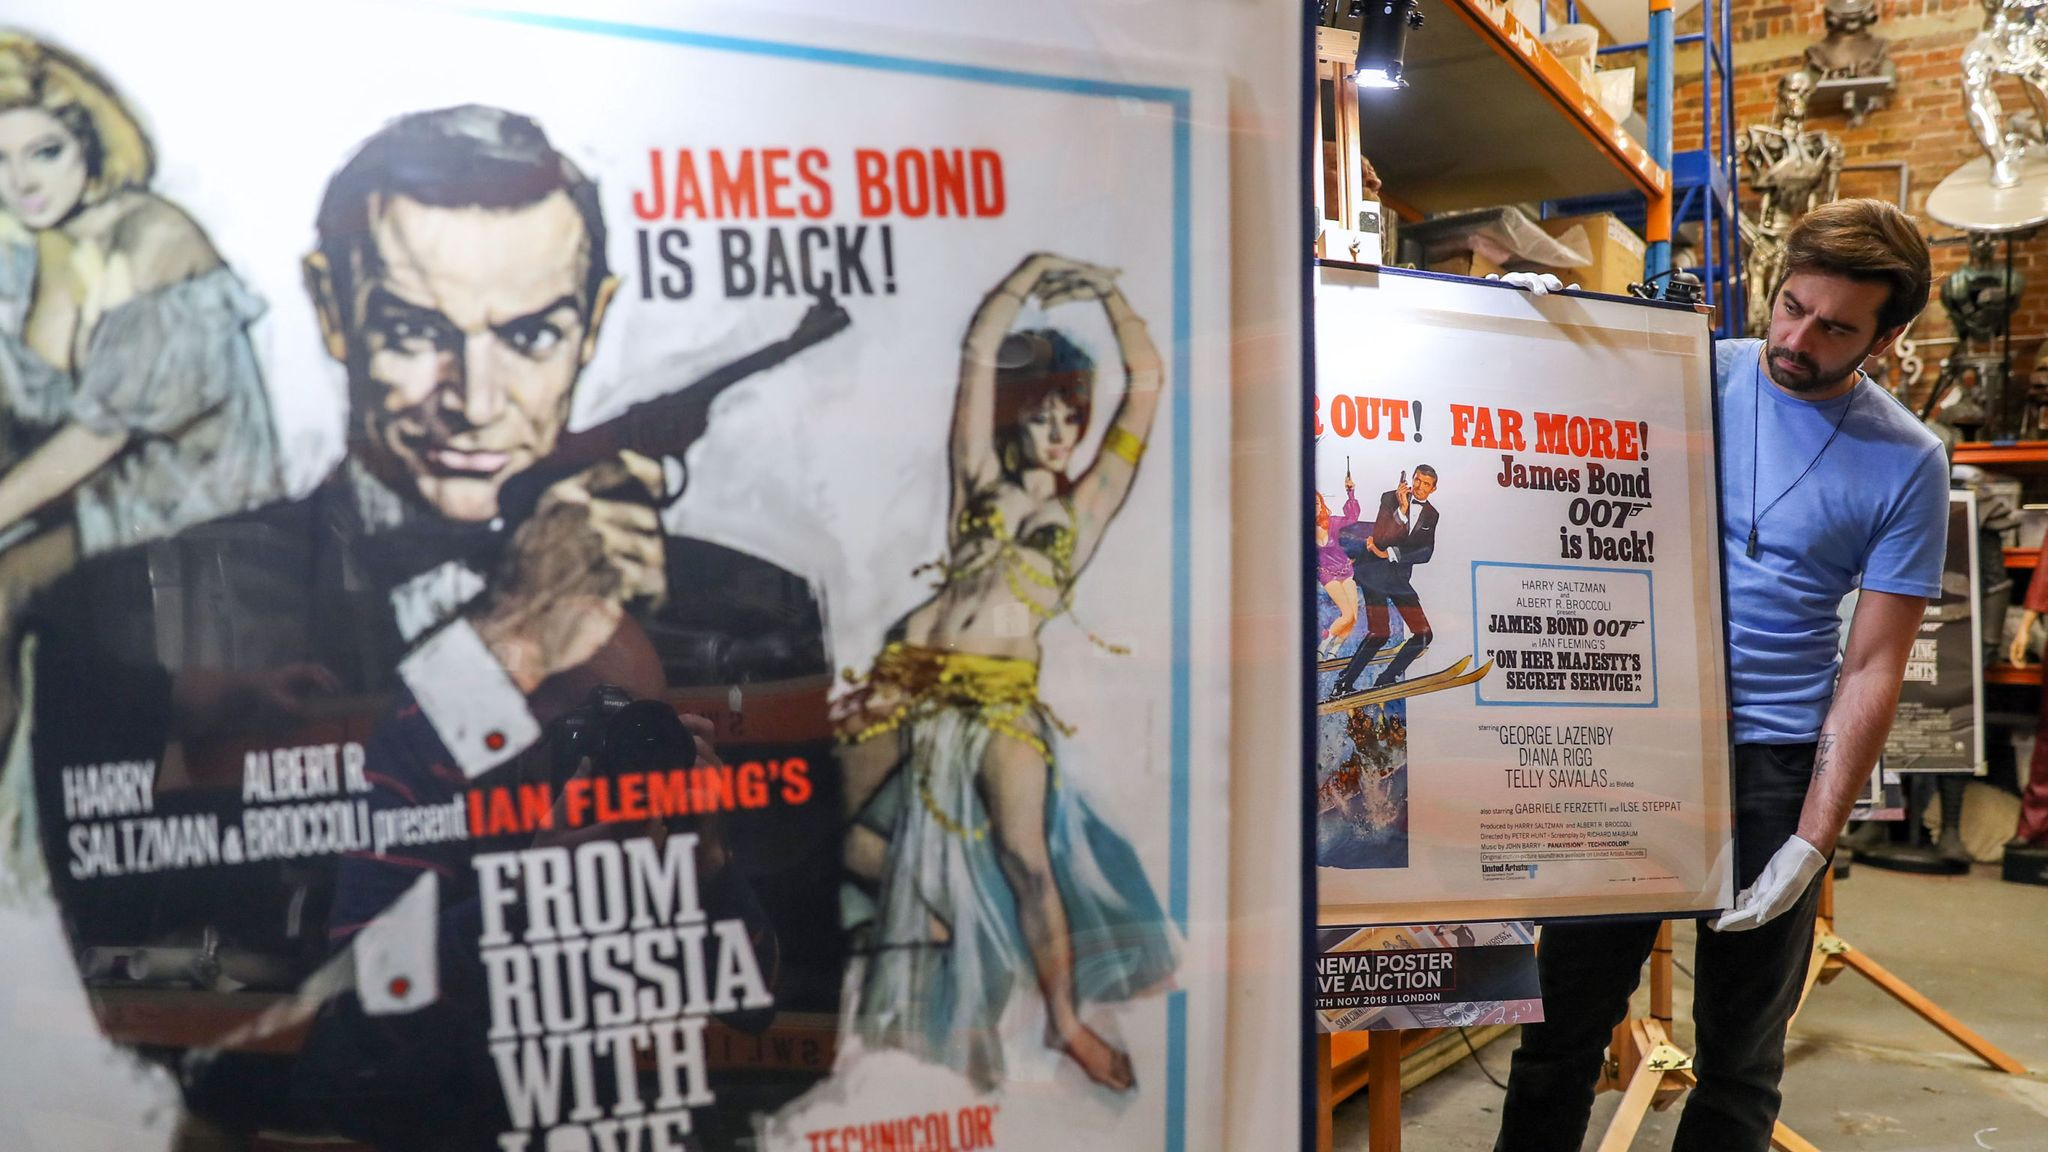 Rare James Bond Movie Posters Could Fetch Up To 28 000 At Auction Ents Arts News Sky News